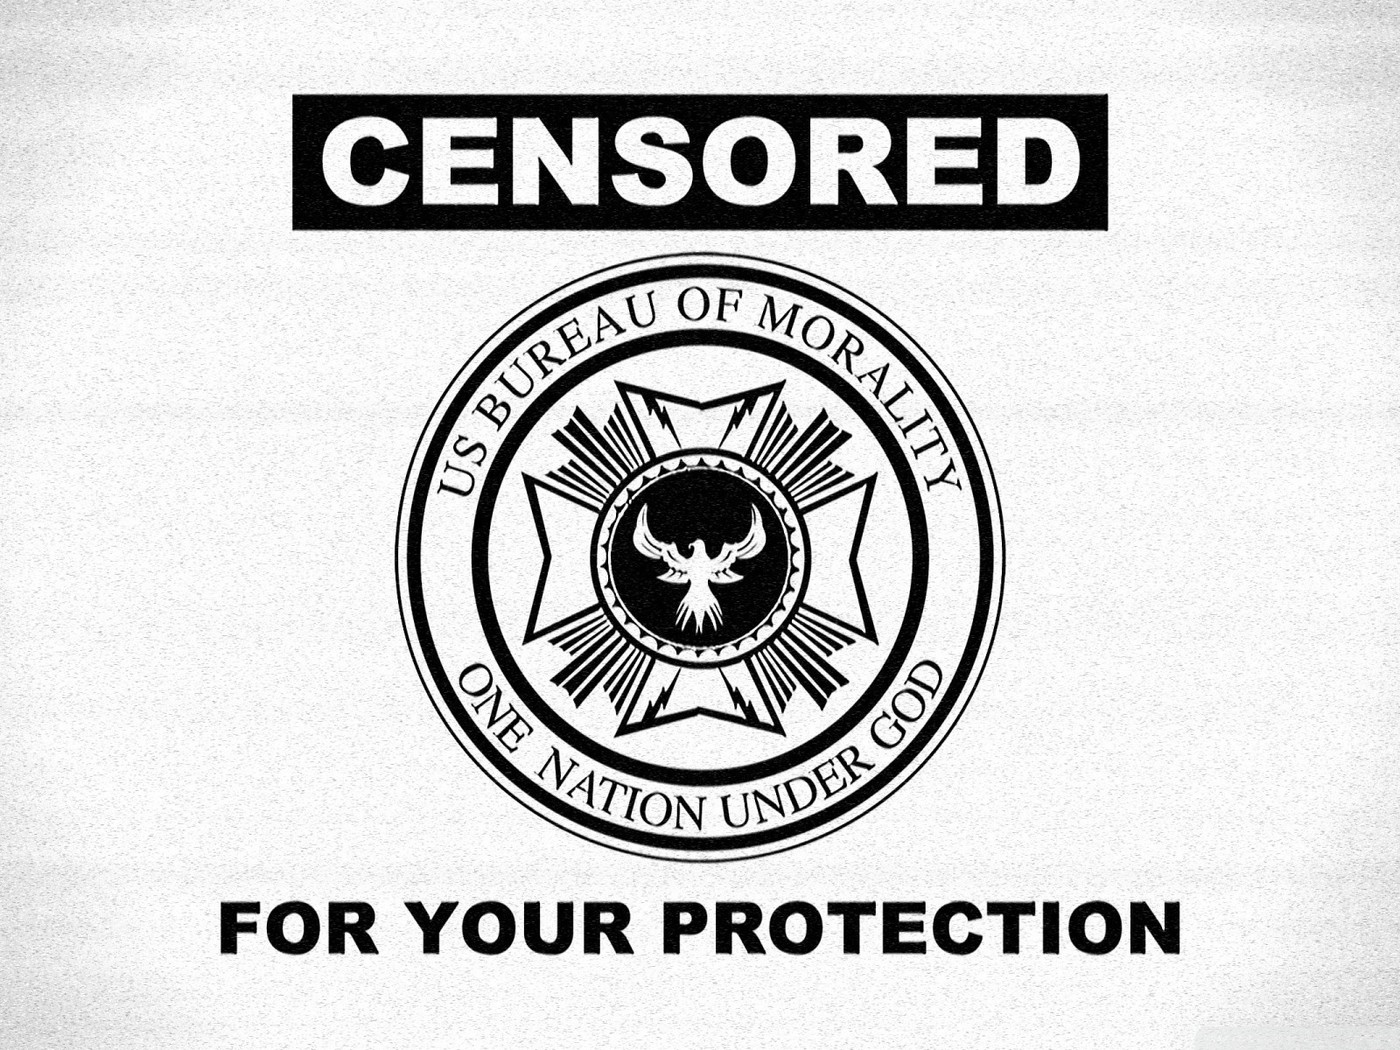 Censored Government Wallpaper Allwallpaper In 6242 Pc